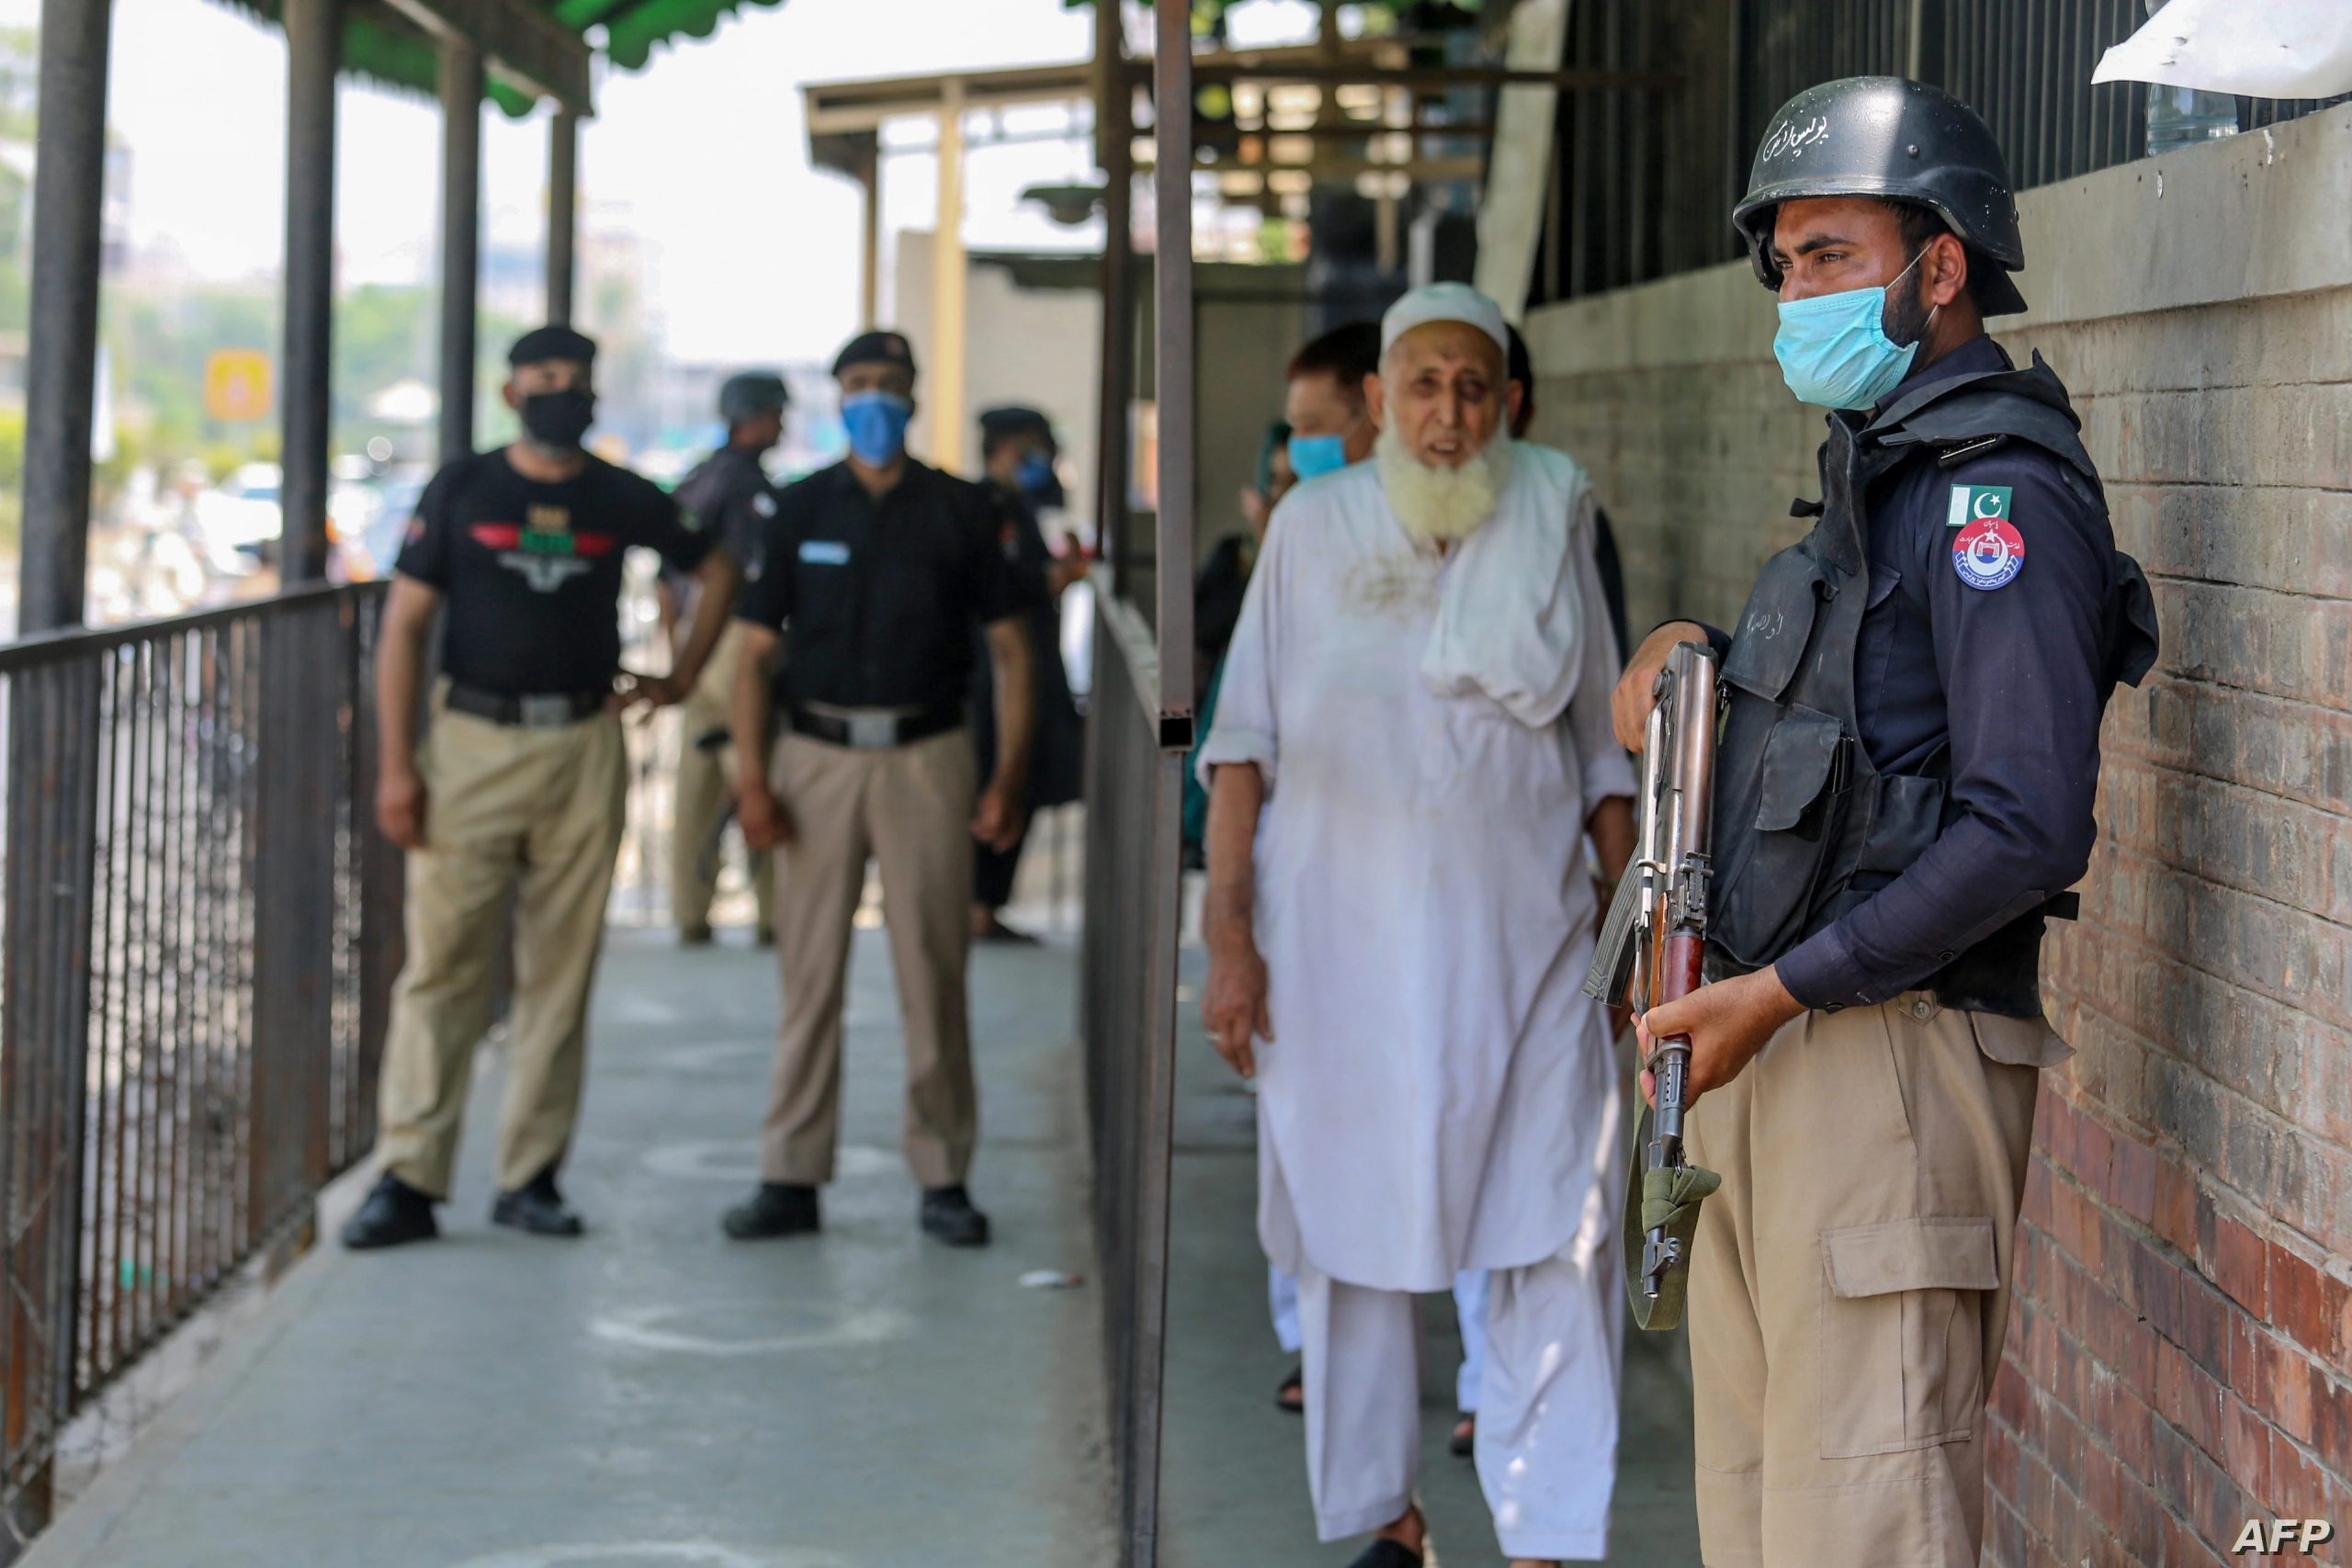 U.S. Citizen Standing Trial For Blasphemy In Pakistan, Shot And Killed By Teenager